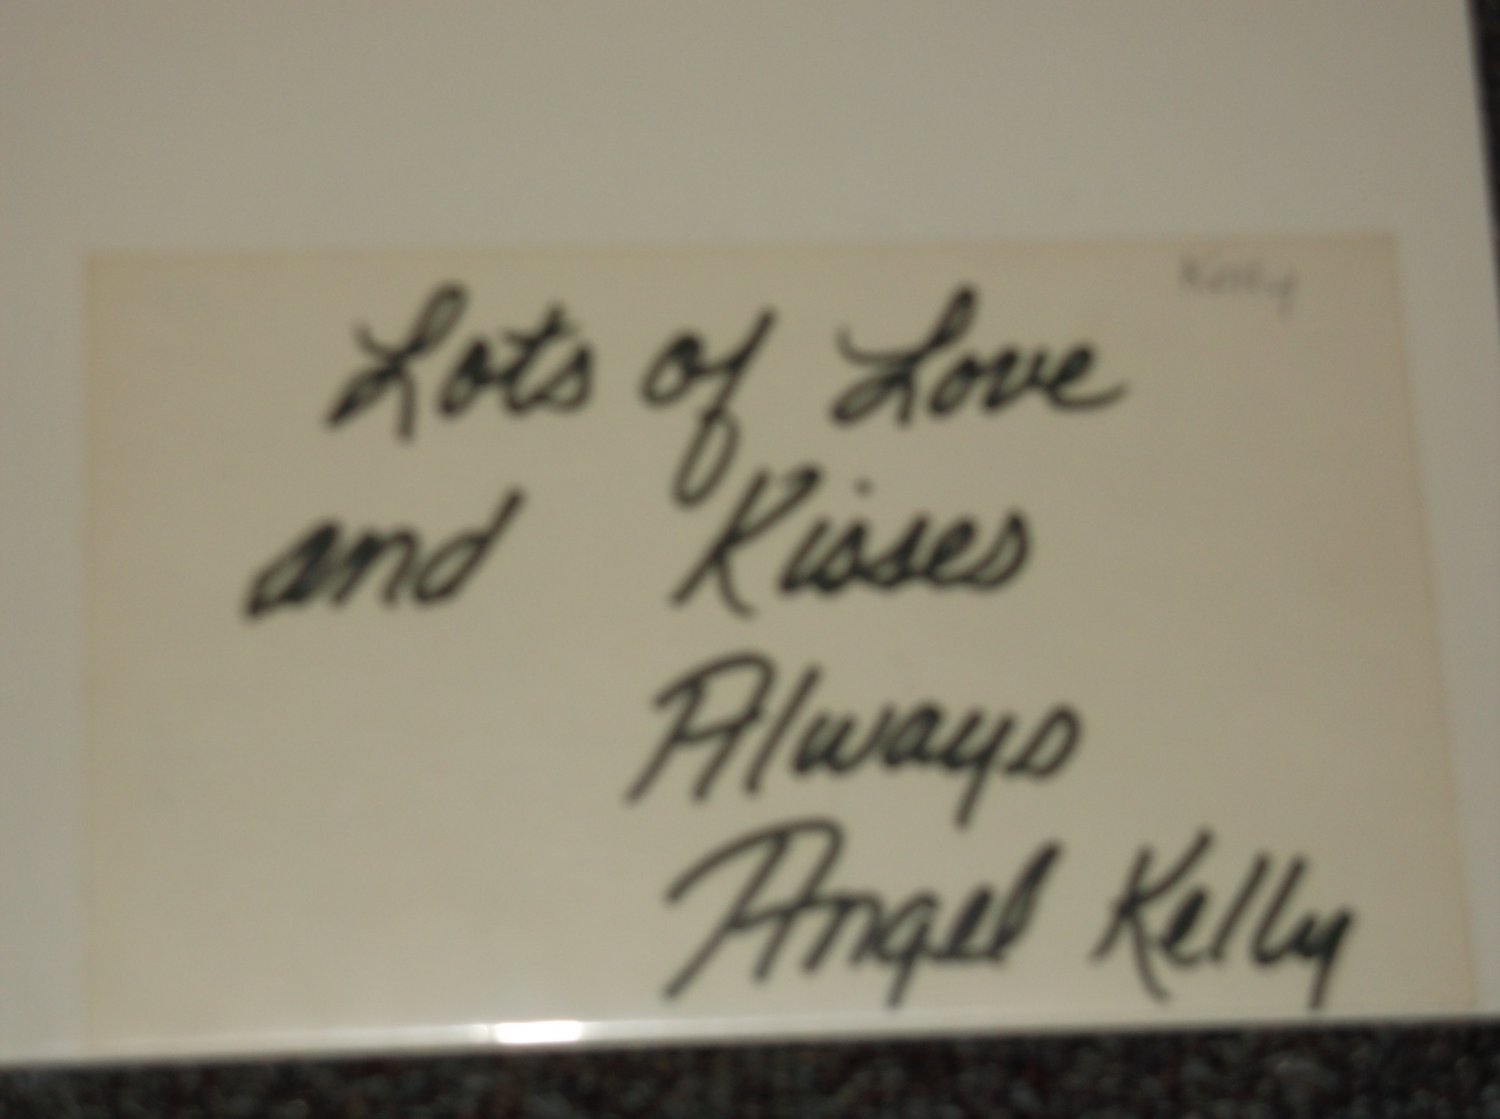 Angel Kelly signed 3x5 card, AVN Hall of Fame